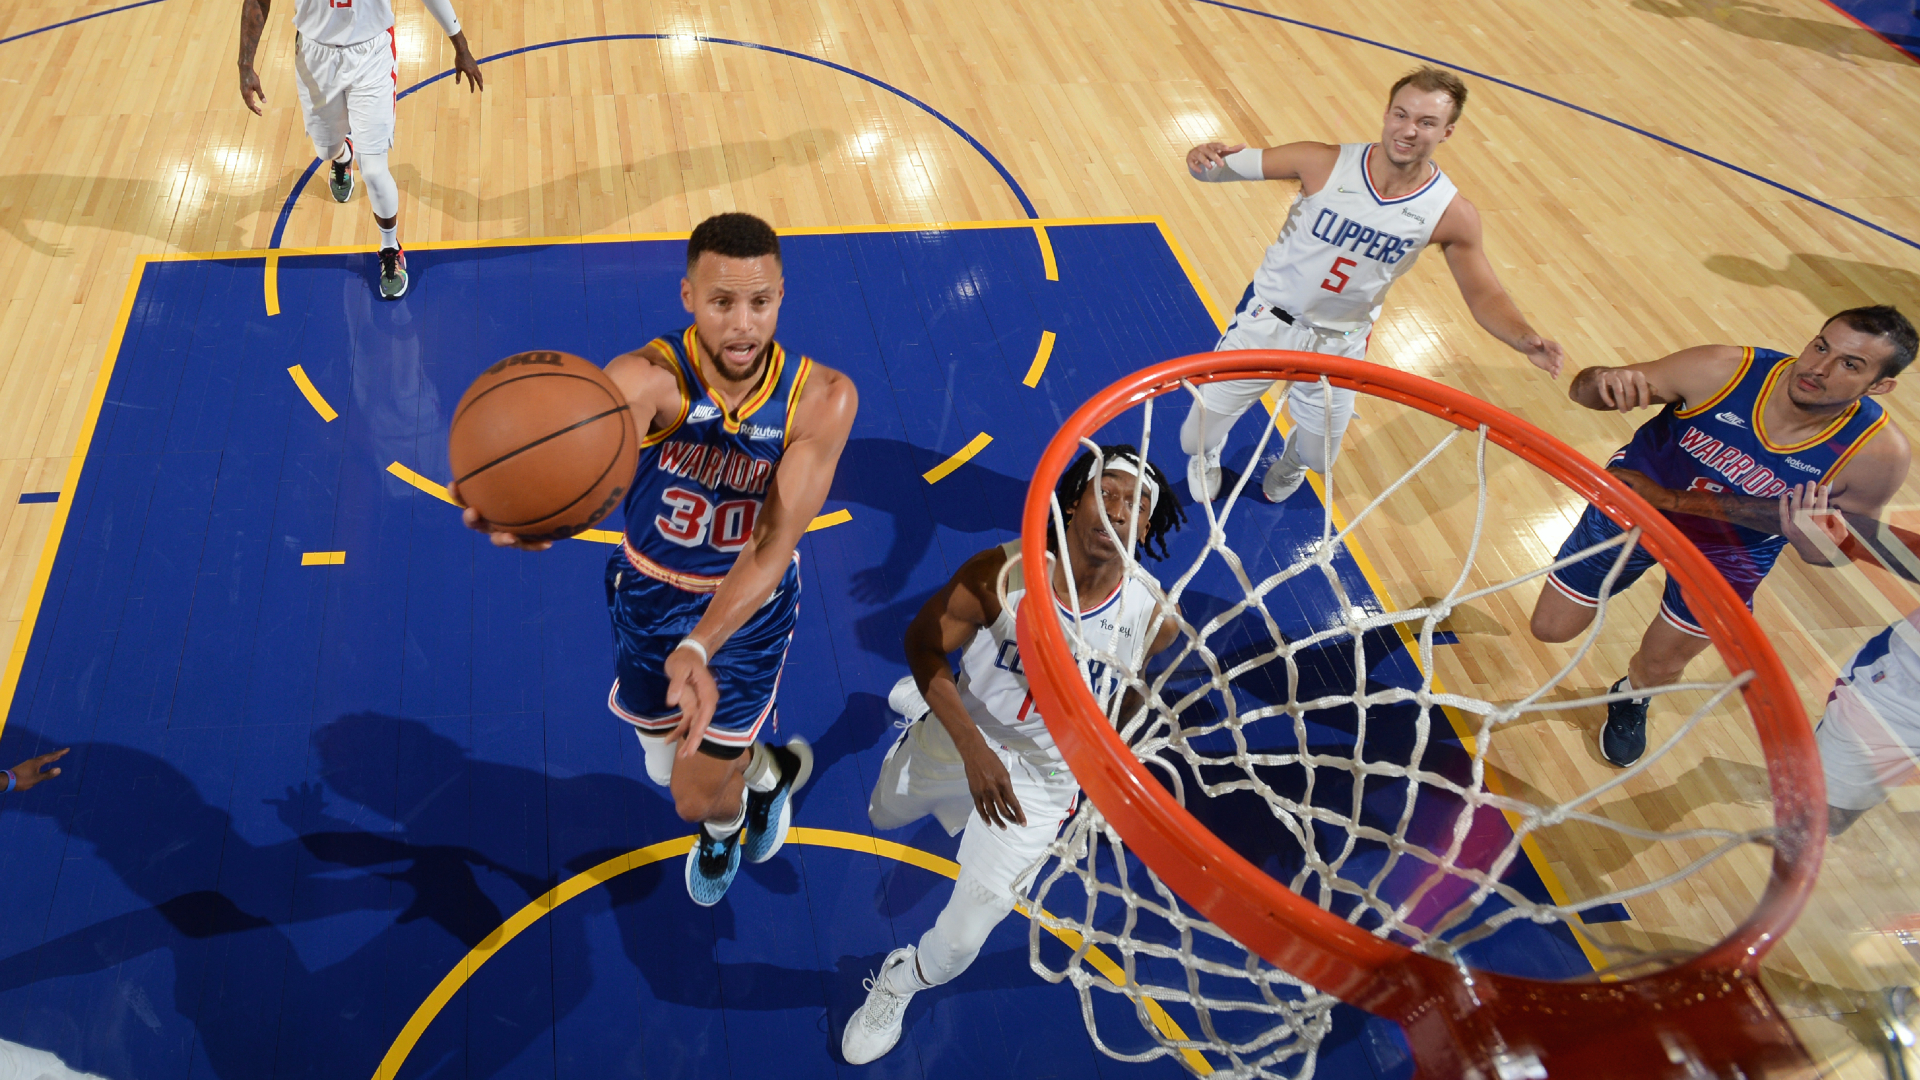 Curry scores 25 in 1st quarter as Warriors host Clippers